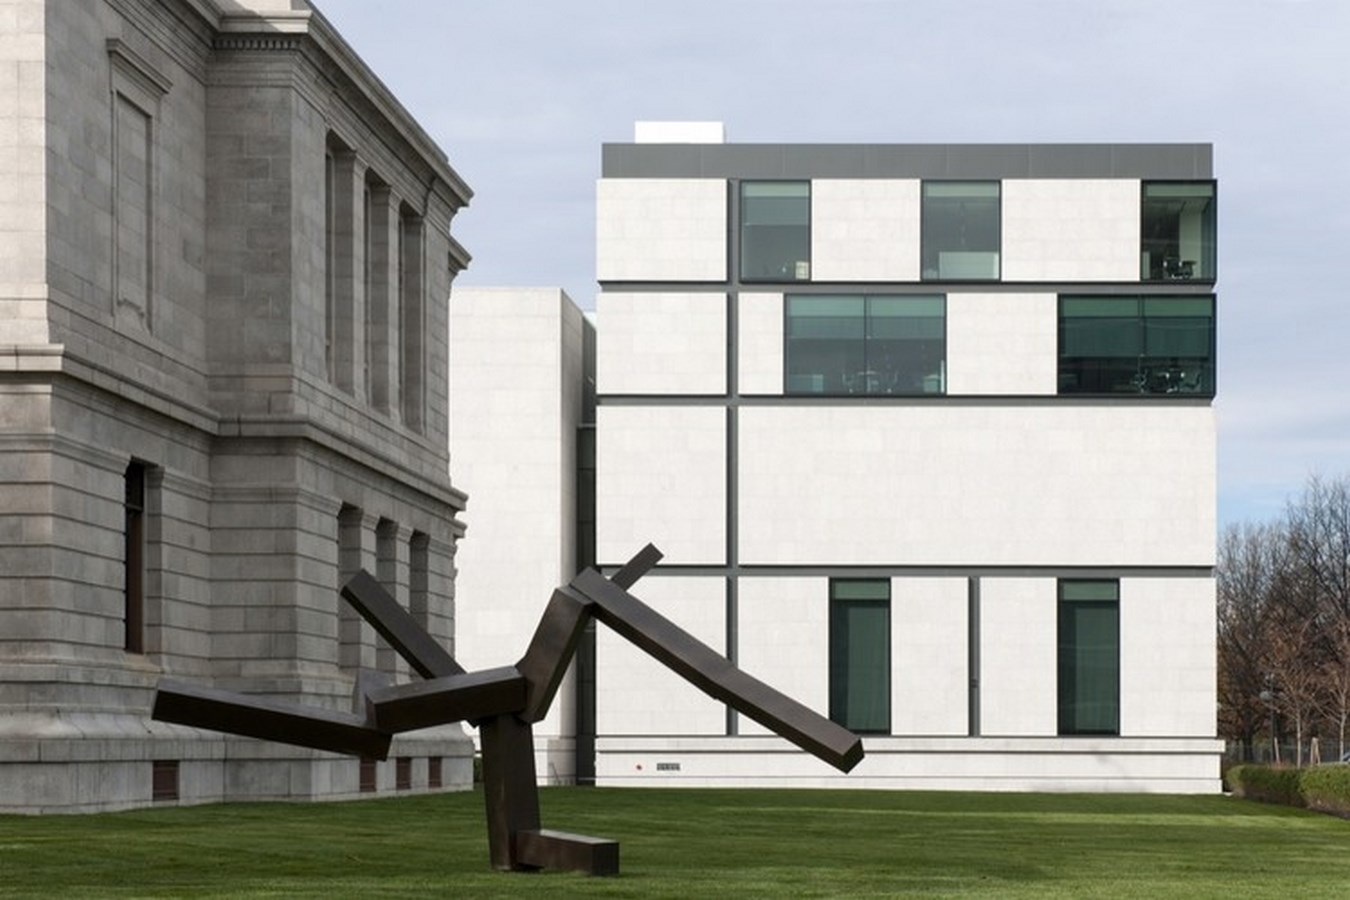 25 Most Iconic Structures In Boston - MUSEUM OF FINE ARTS - Sheet1